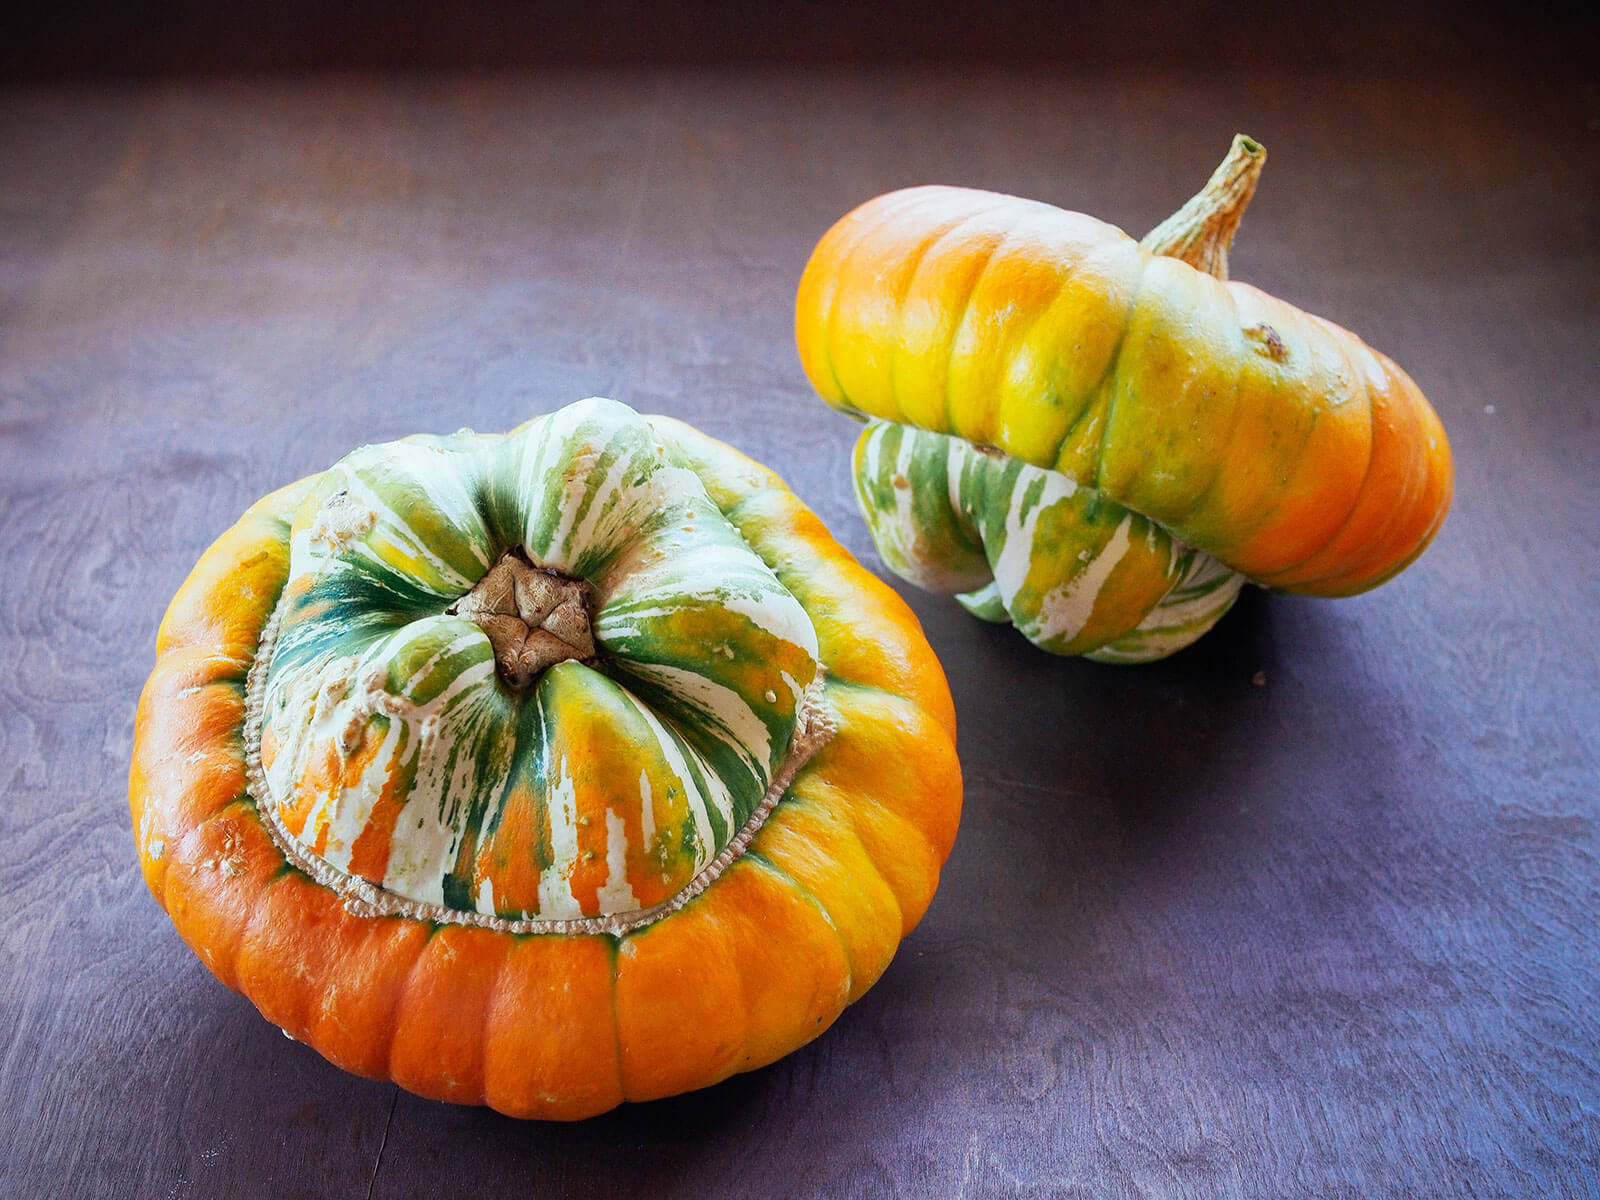 Two turban squash sitting on a wooden table